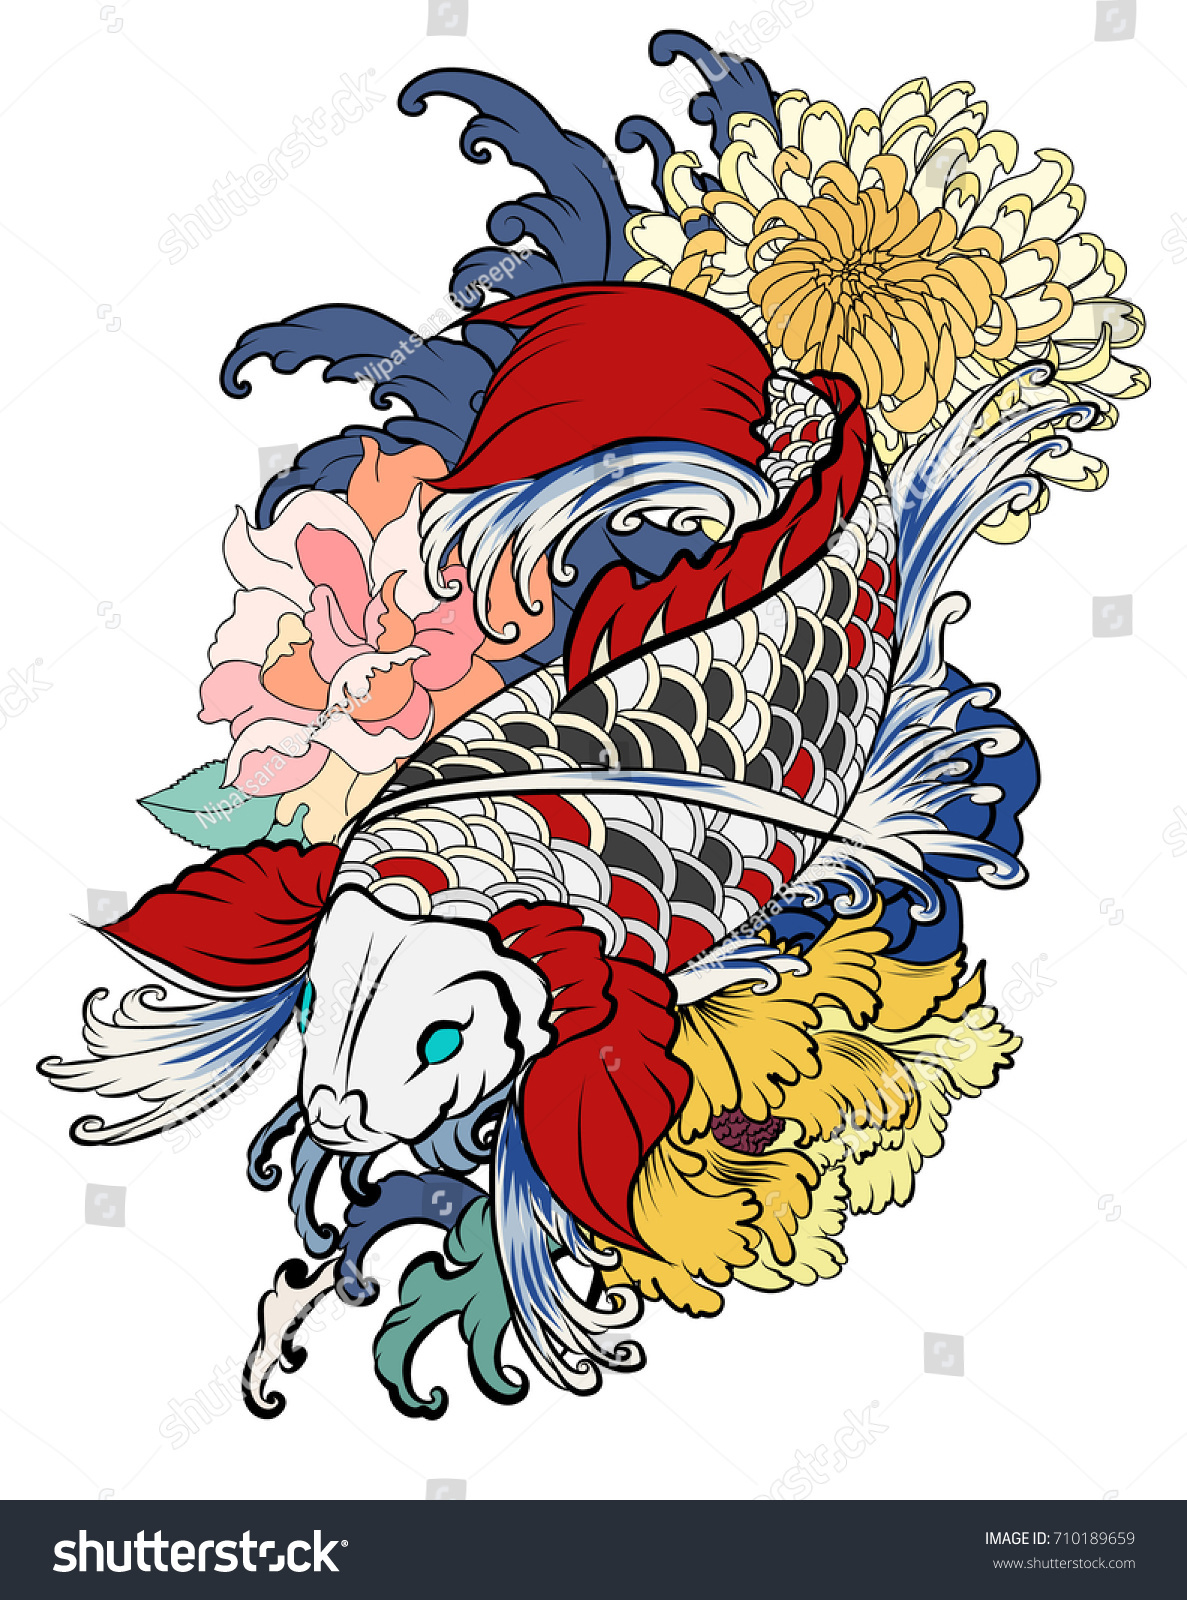 Hand Drawn Koi Fish Flower Tattoo Stock Vector 710189659 - Shutterstock